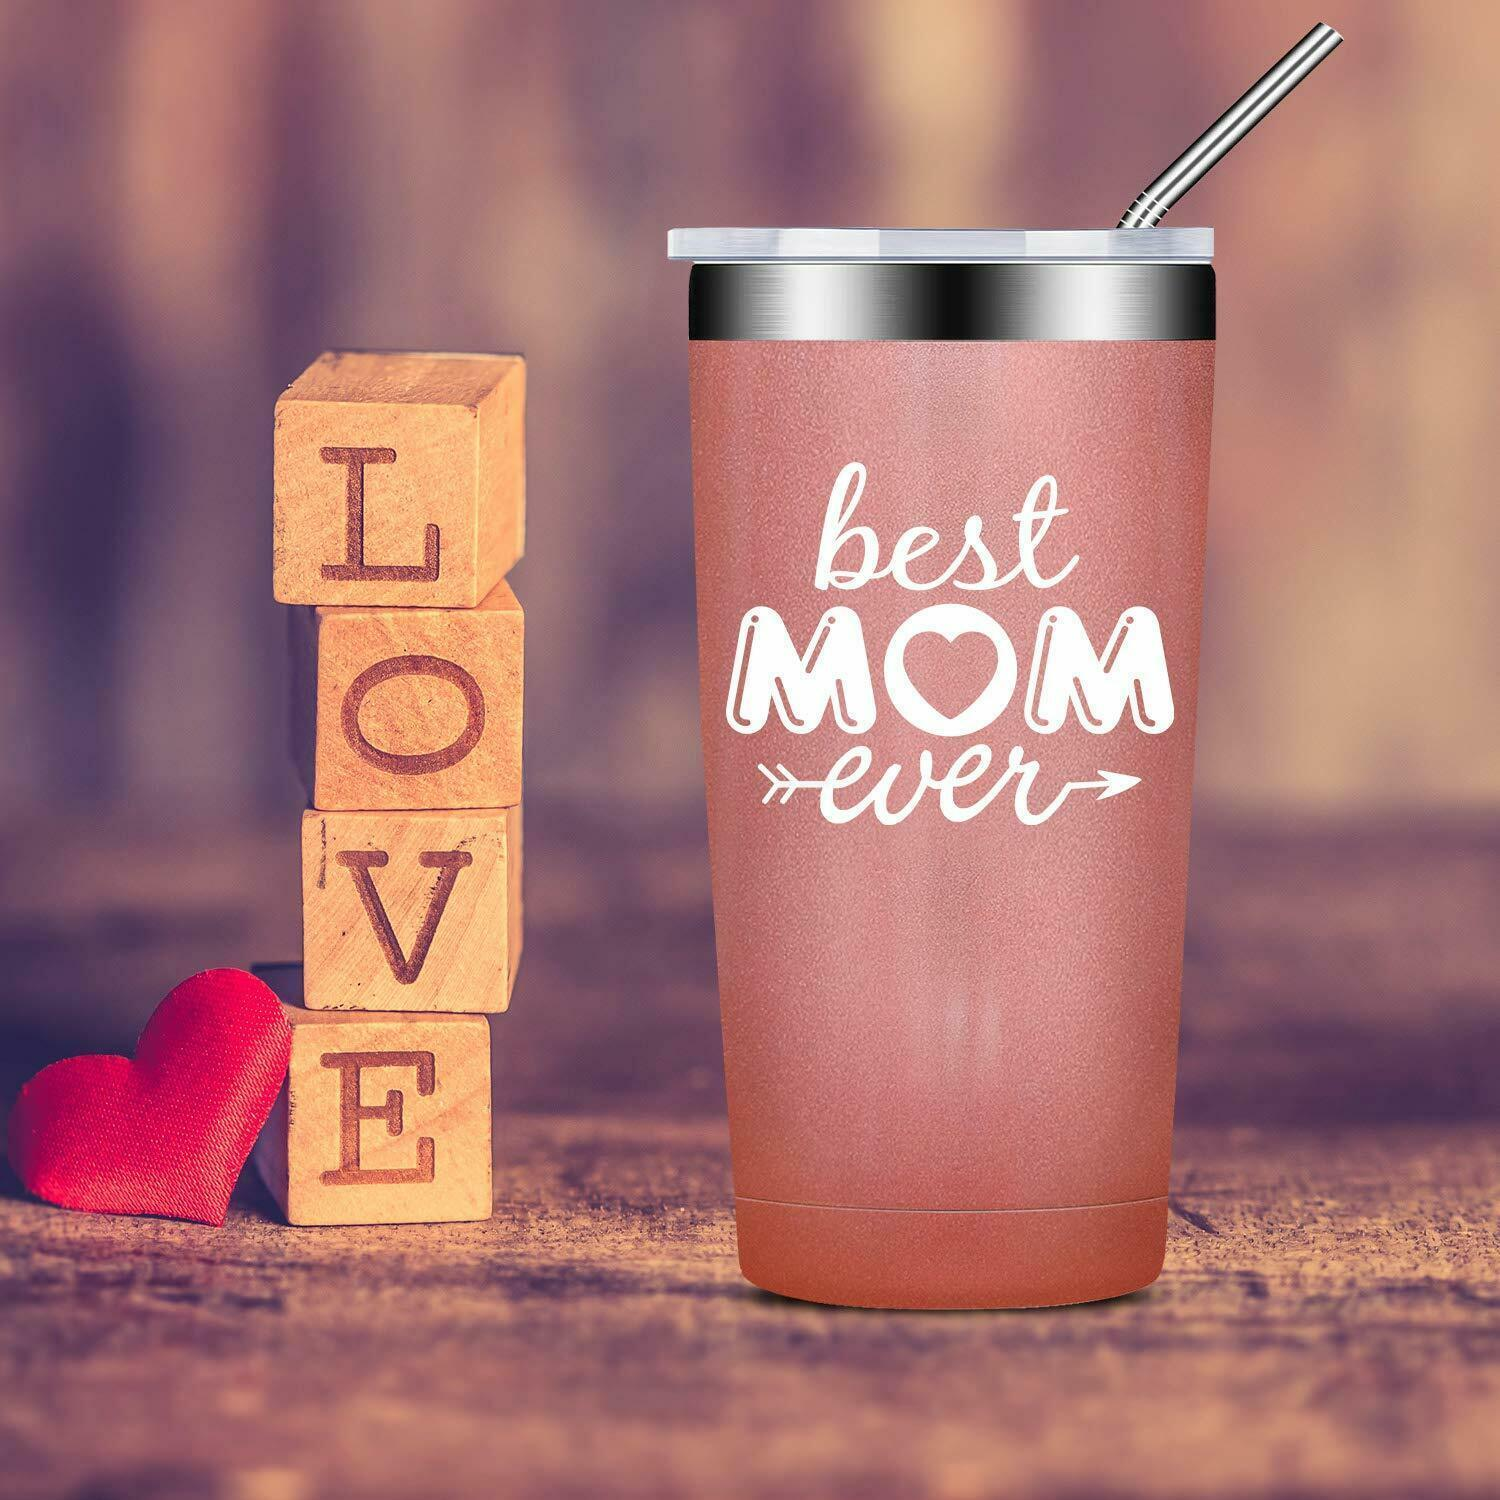 Best Mom Ever, Birthday Gifts for Mom from (Best Mom Ever-Rose Gold, 20 oz)